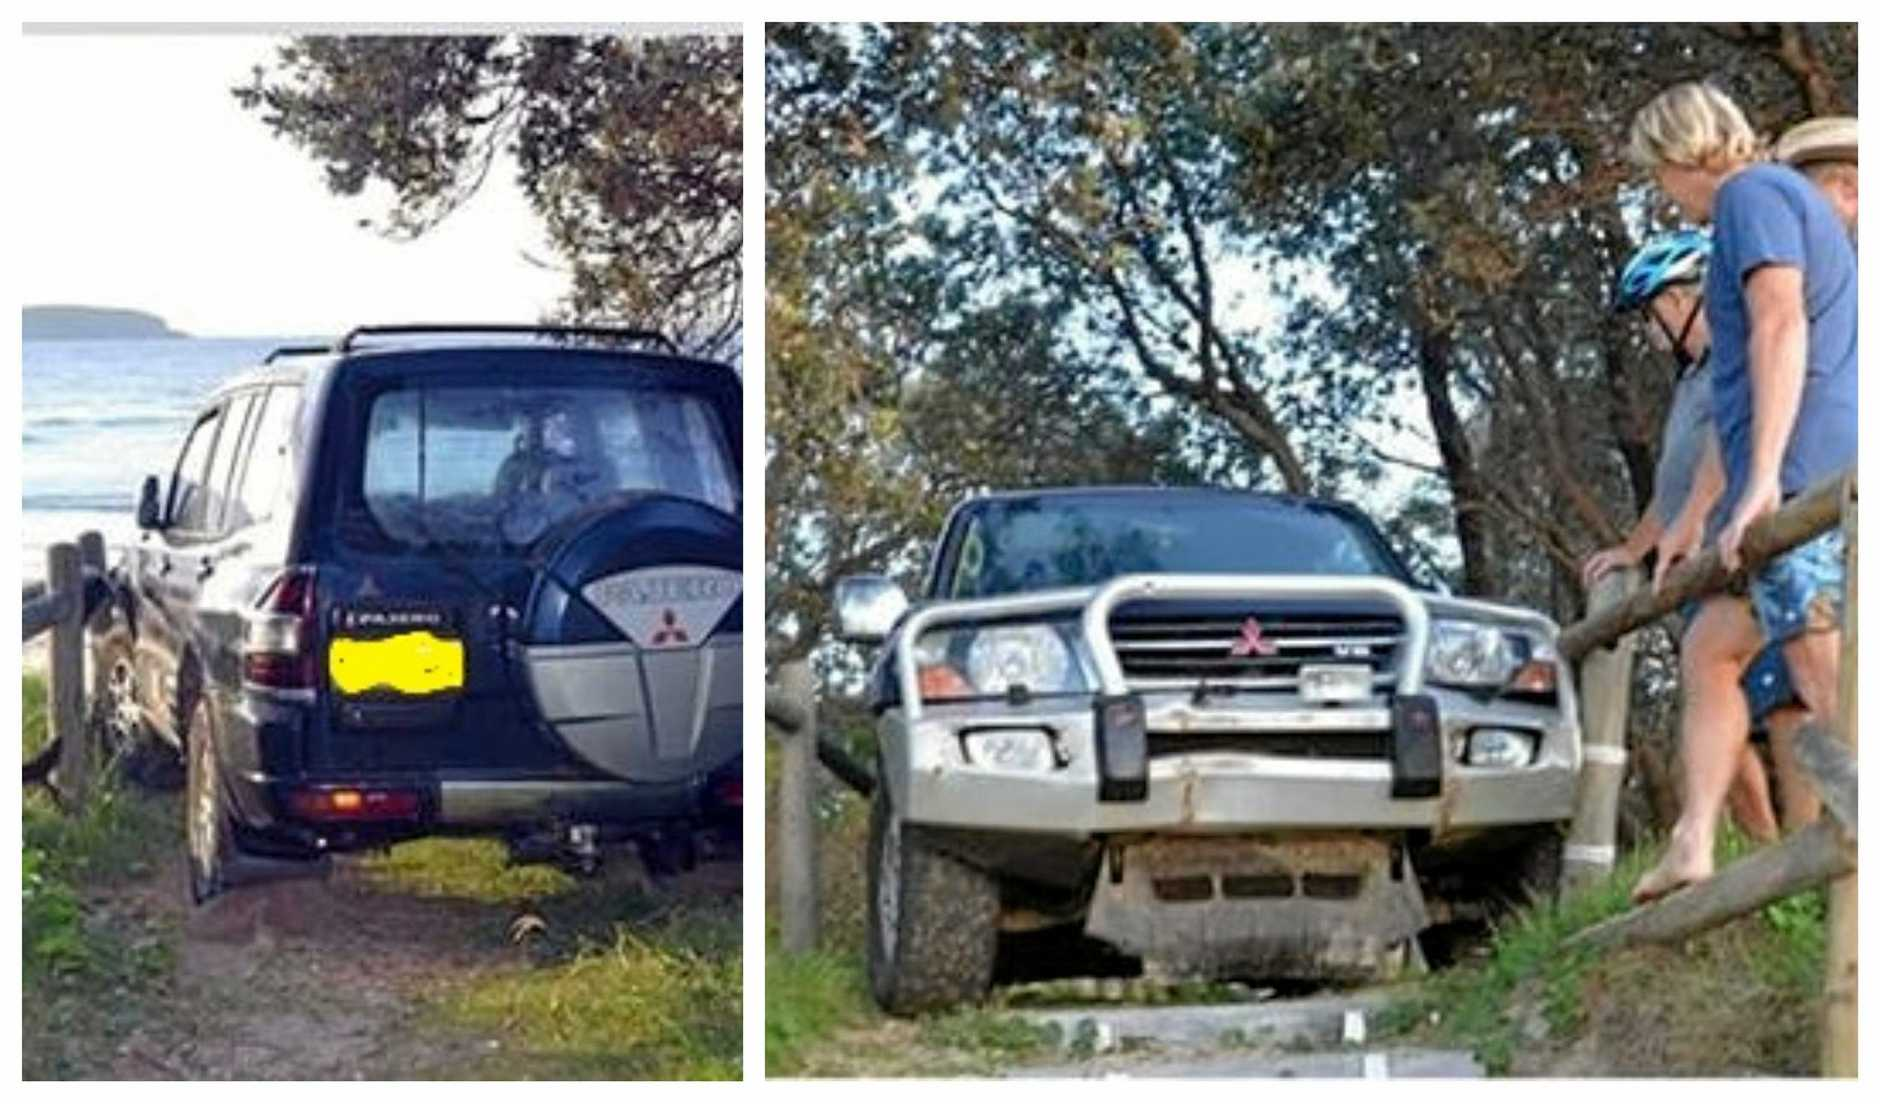 Police say the Pajero has been linked to the damage caused to Woolgoolga's much-loved shipwreck Buster.